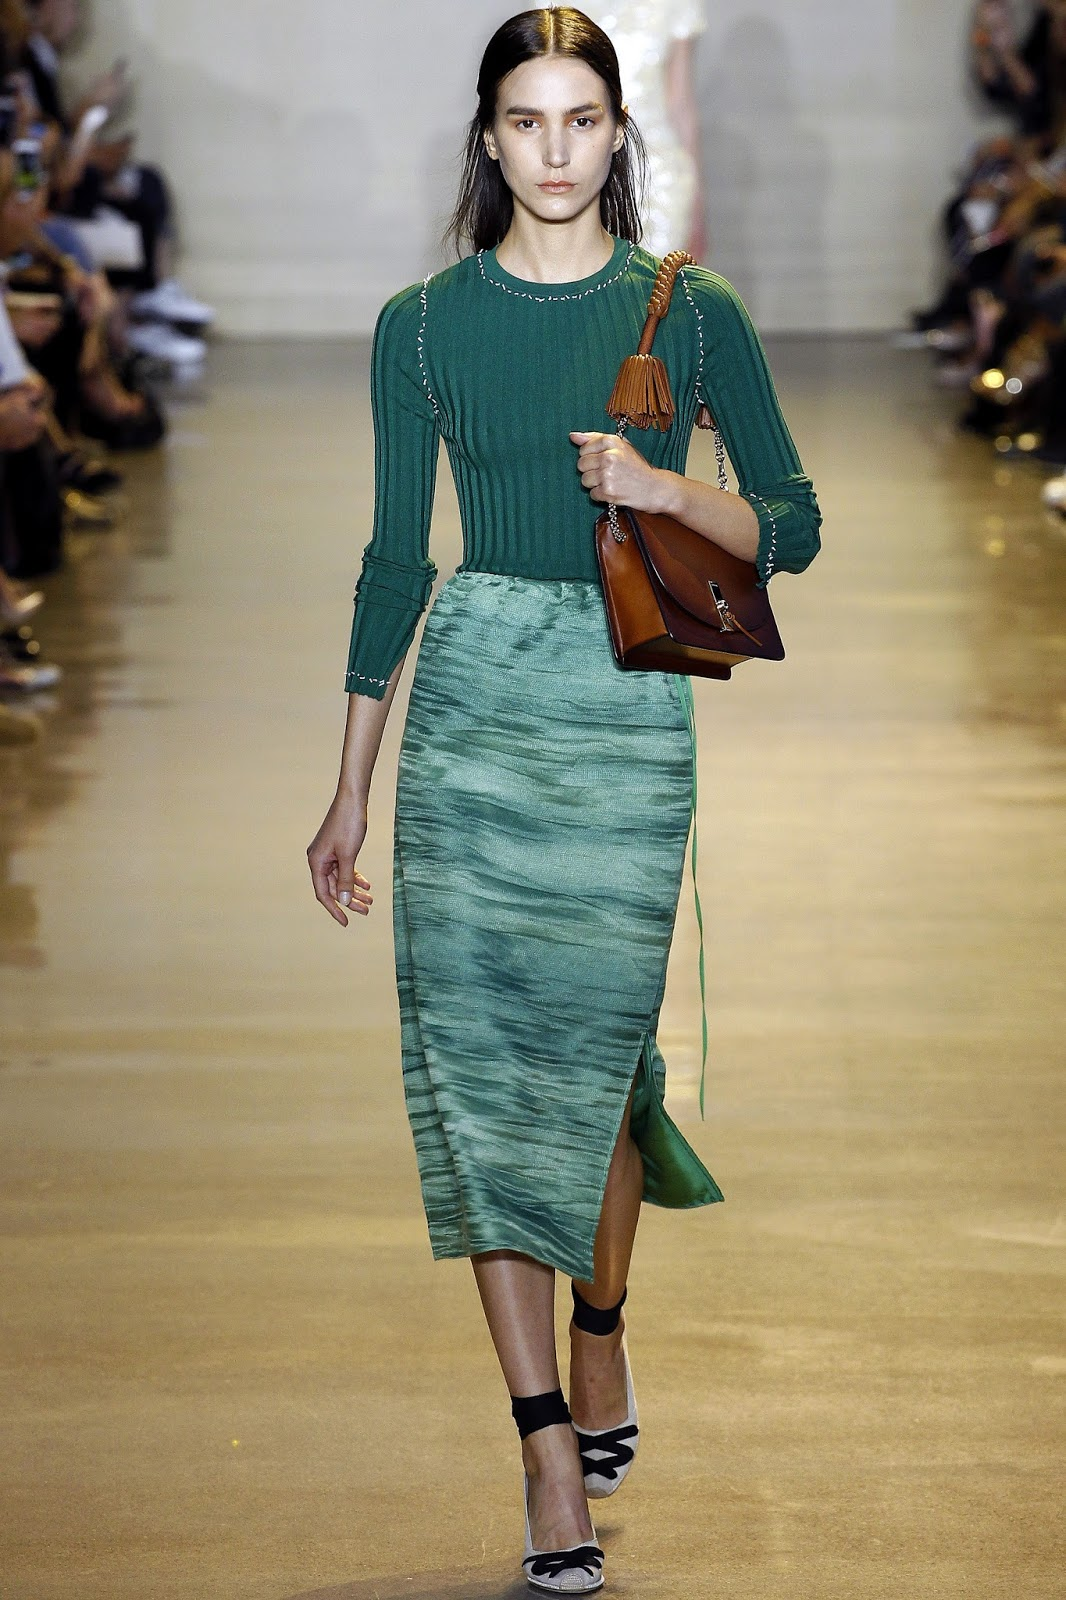 Pantone colour report & spring summer 2016 fashion trends / green flash at Altuzarra Spring/Summer 2016 via www.fashionedbylove.co.uk British fashion & style blog